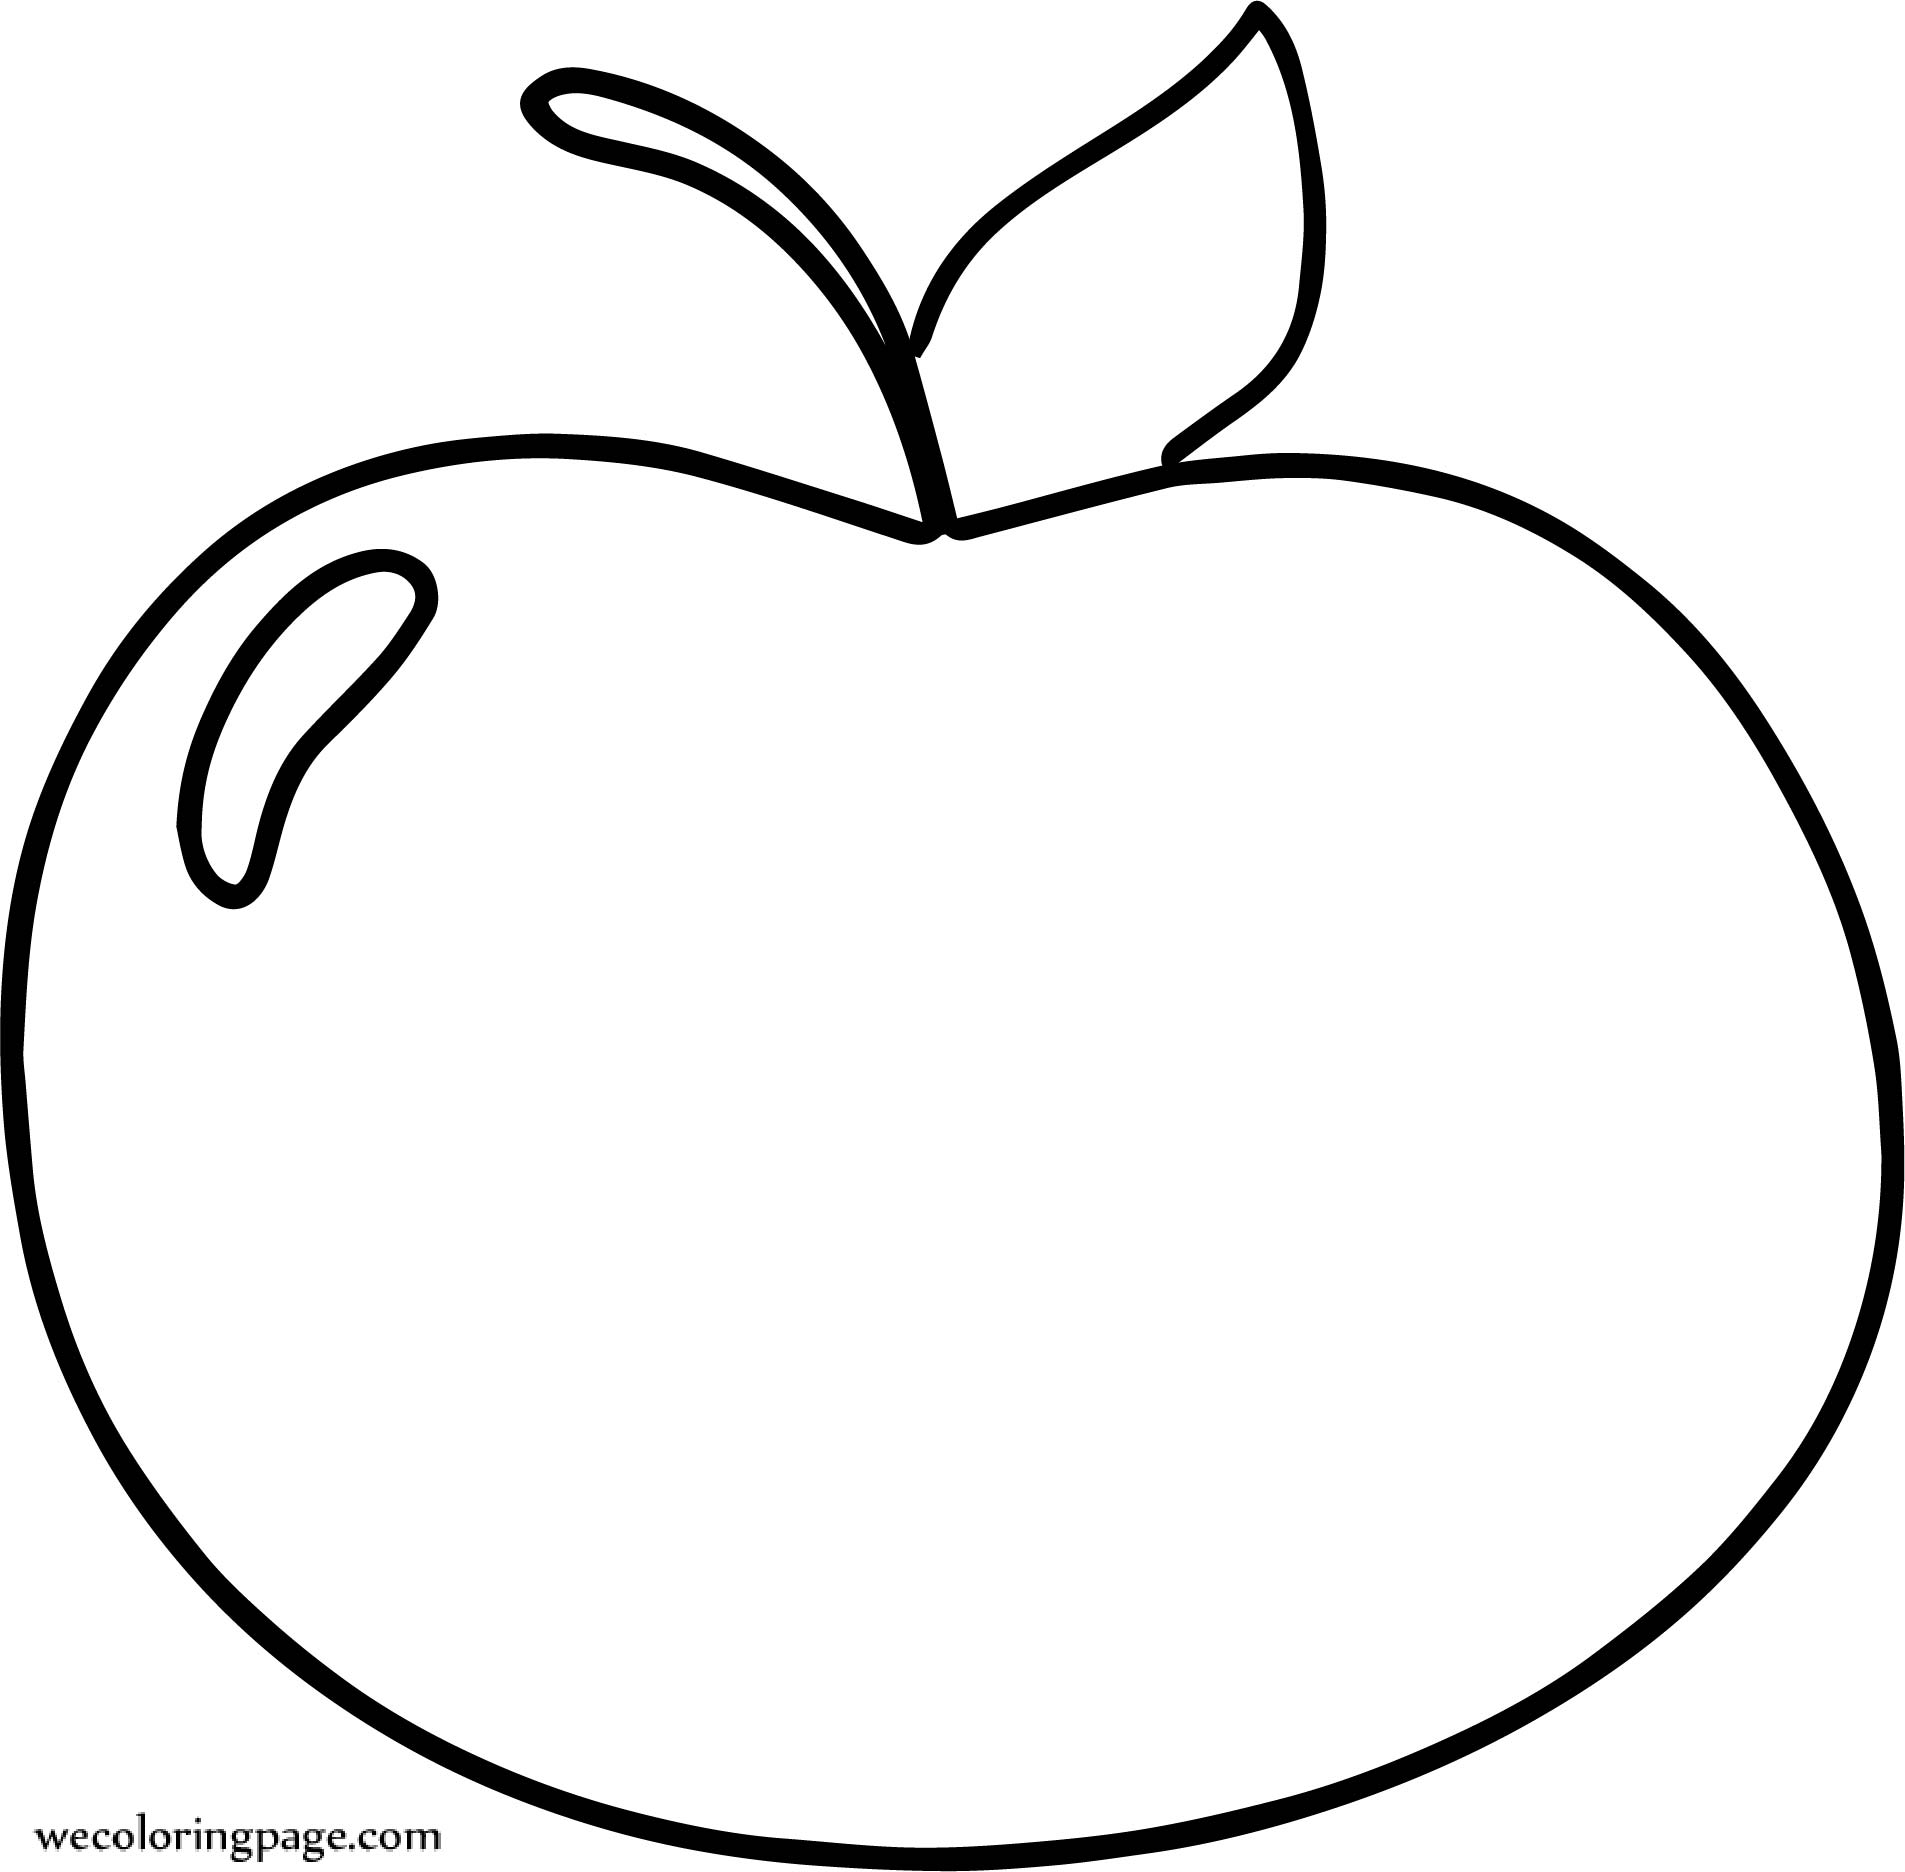 Basic Cute Apple Coloring Page